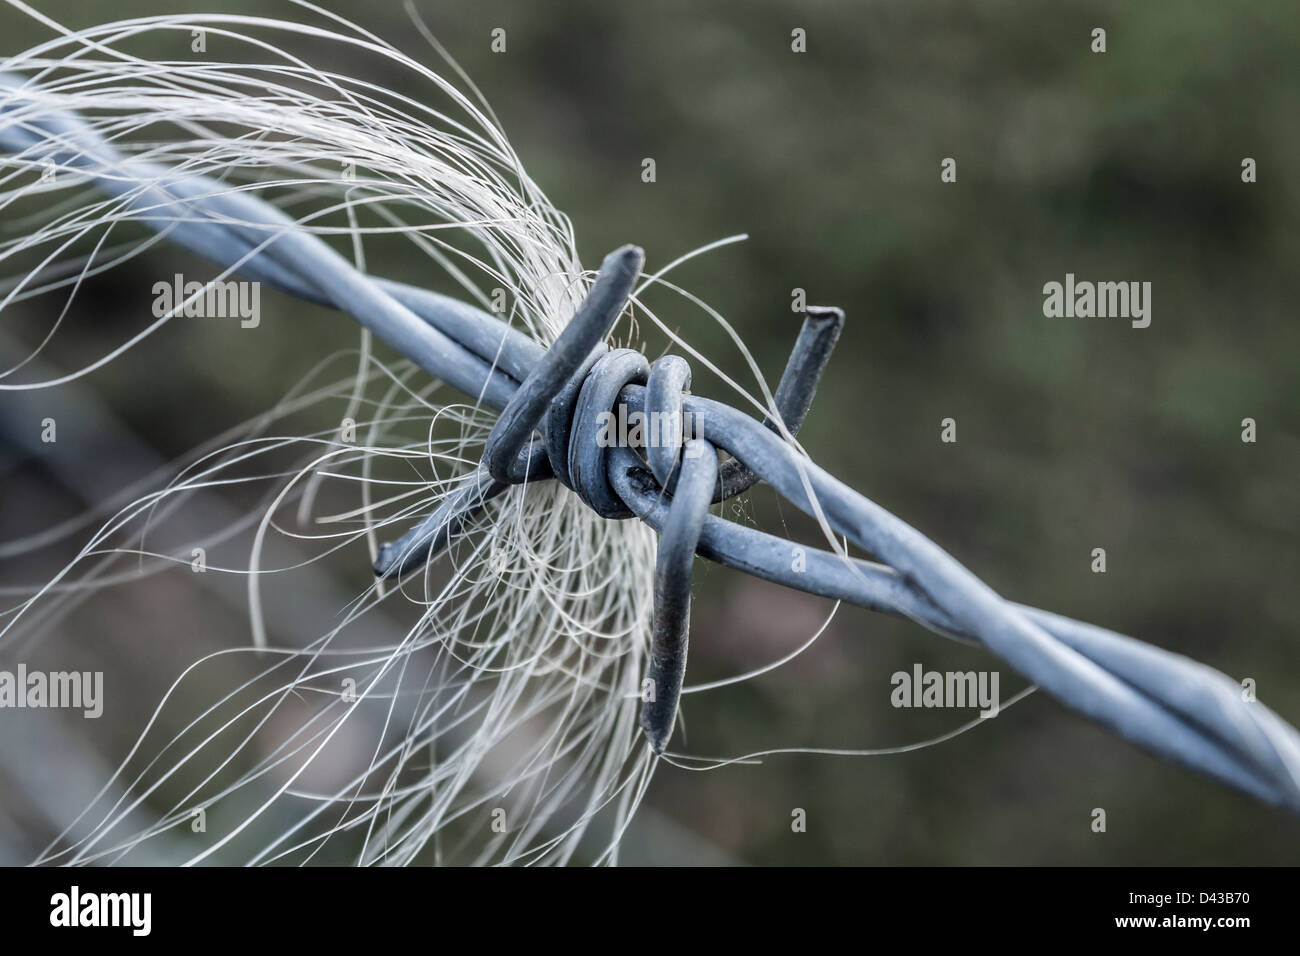 Horse hair caught in barbed wire - Stock Image